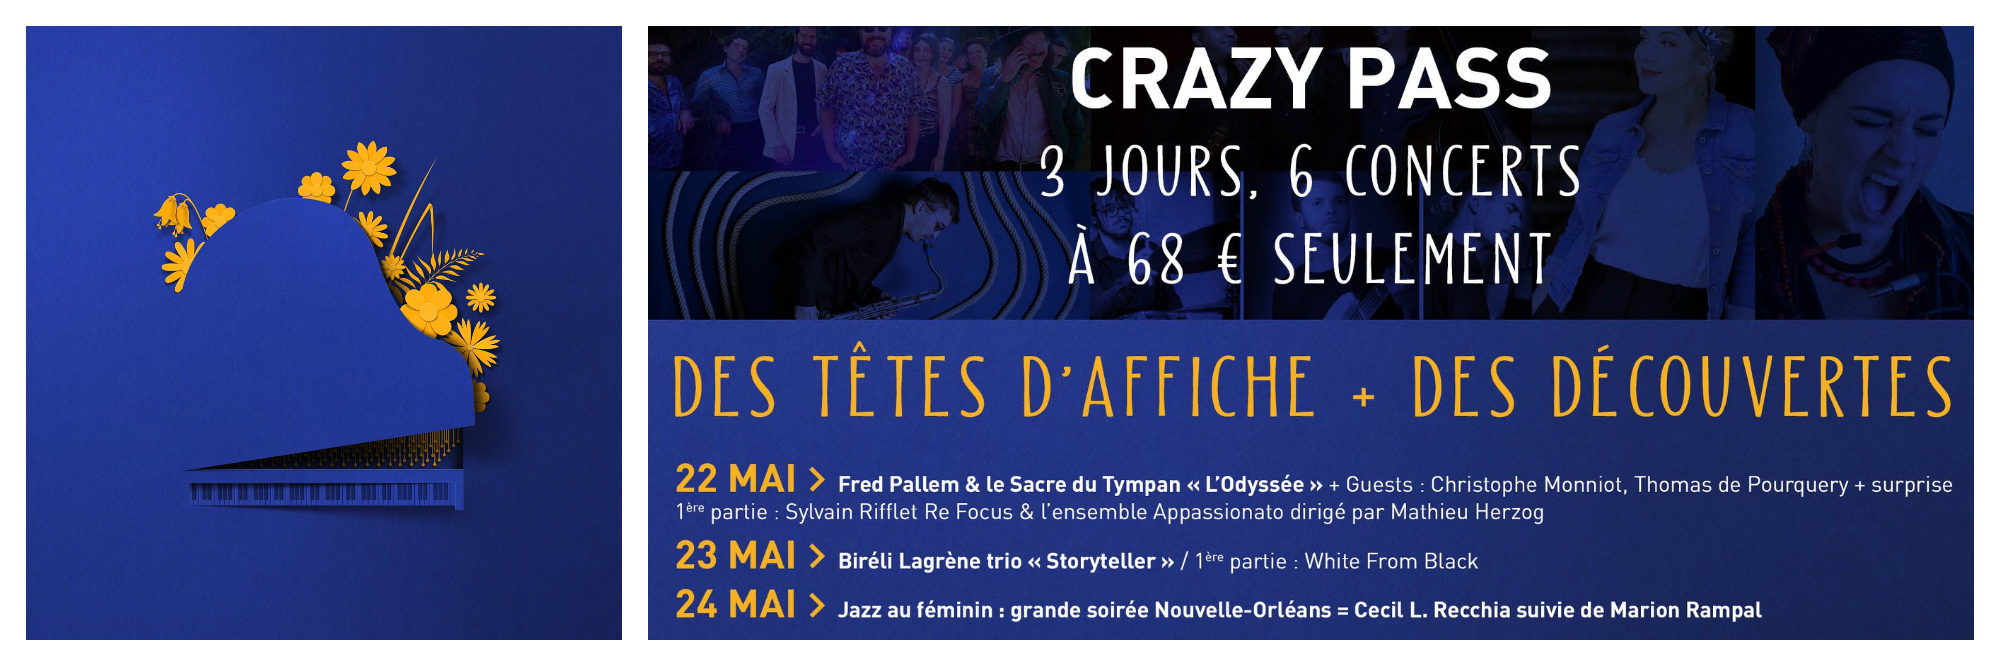 The Crazy Pass allows you to see some of the best concerts in Paris.